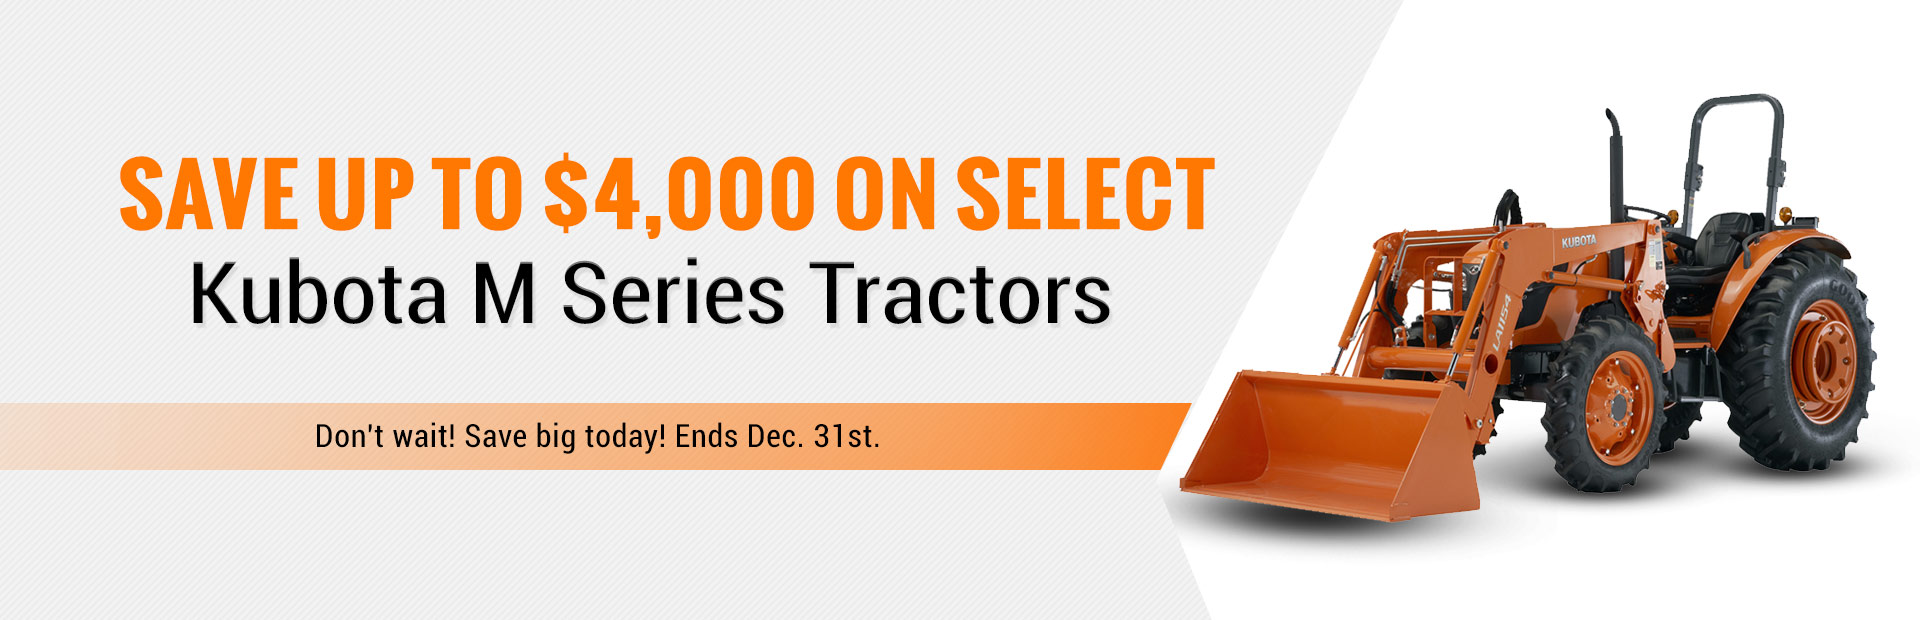 Save up to $4,000 on select Kubota M Series tractors!